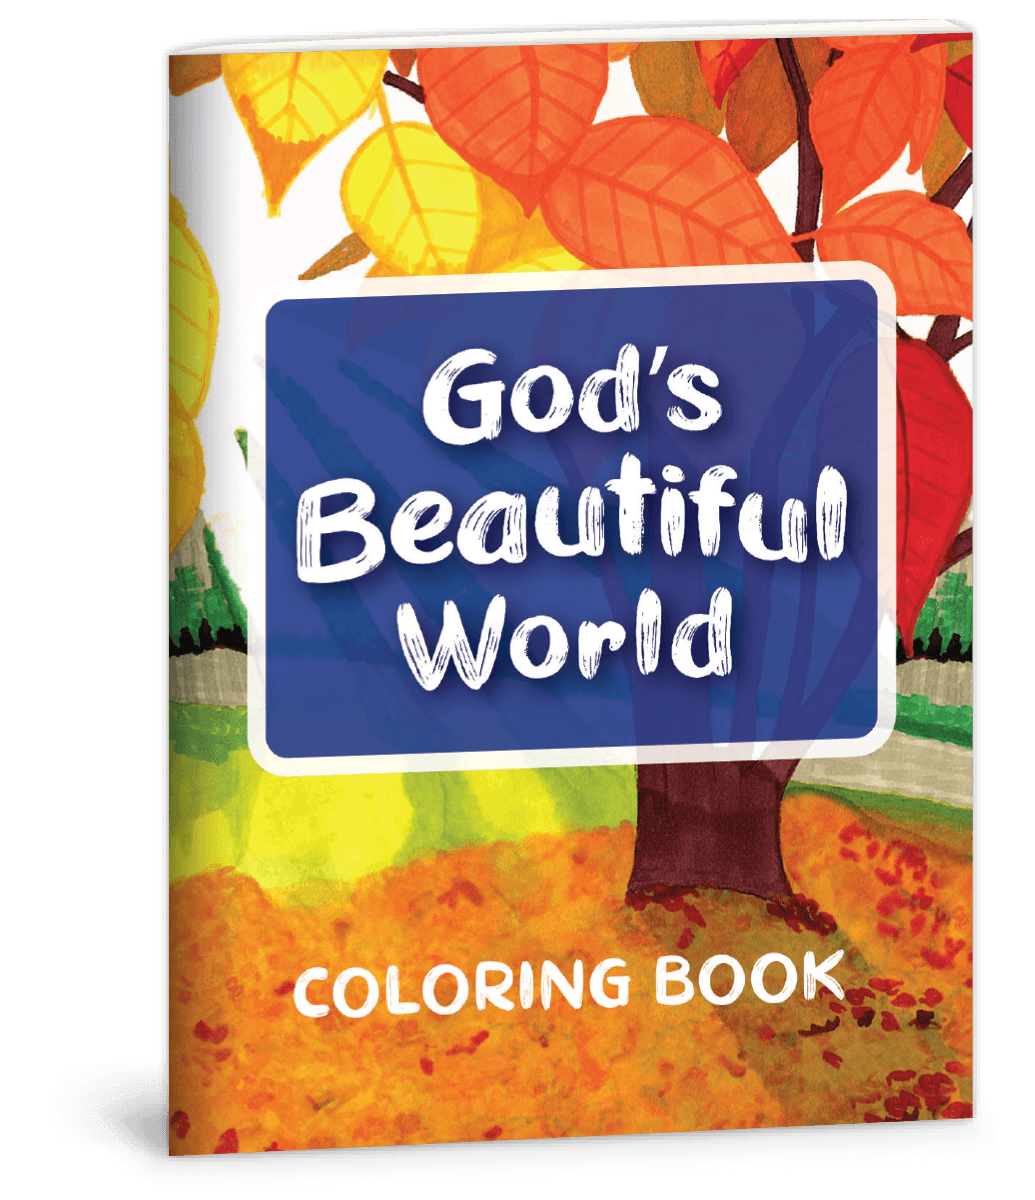 God's Beautiful World Coloring Book